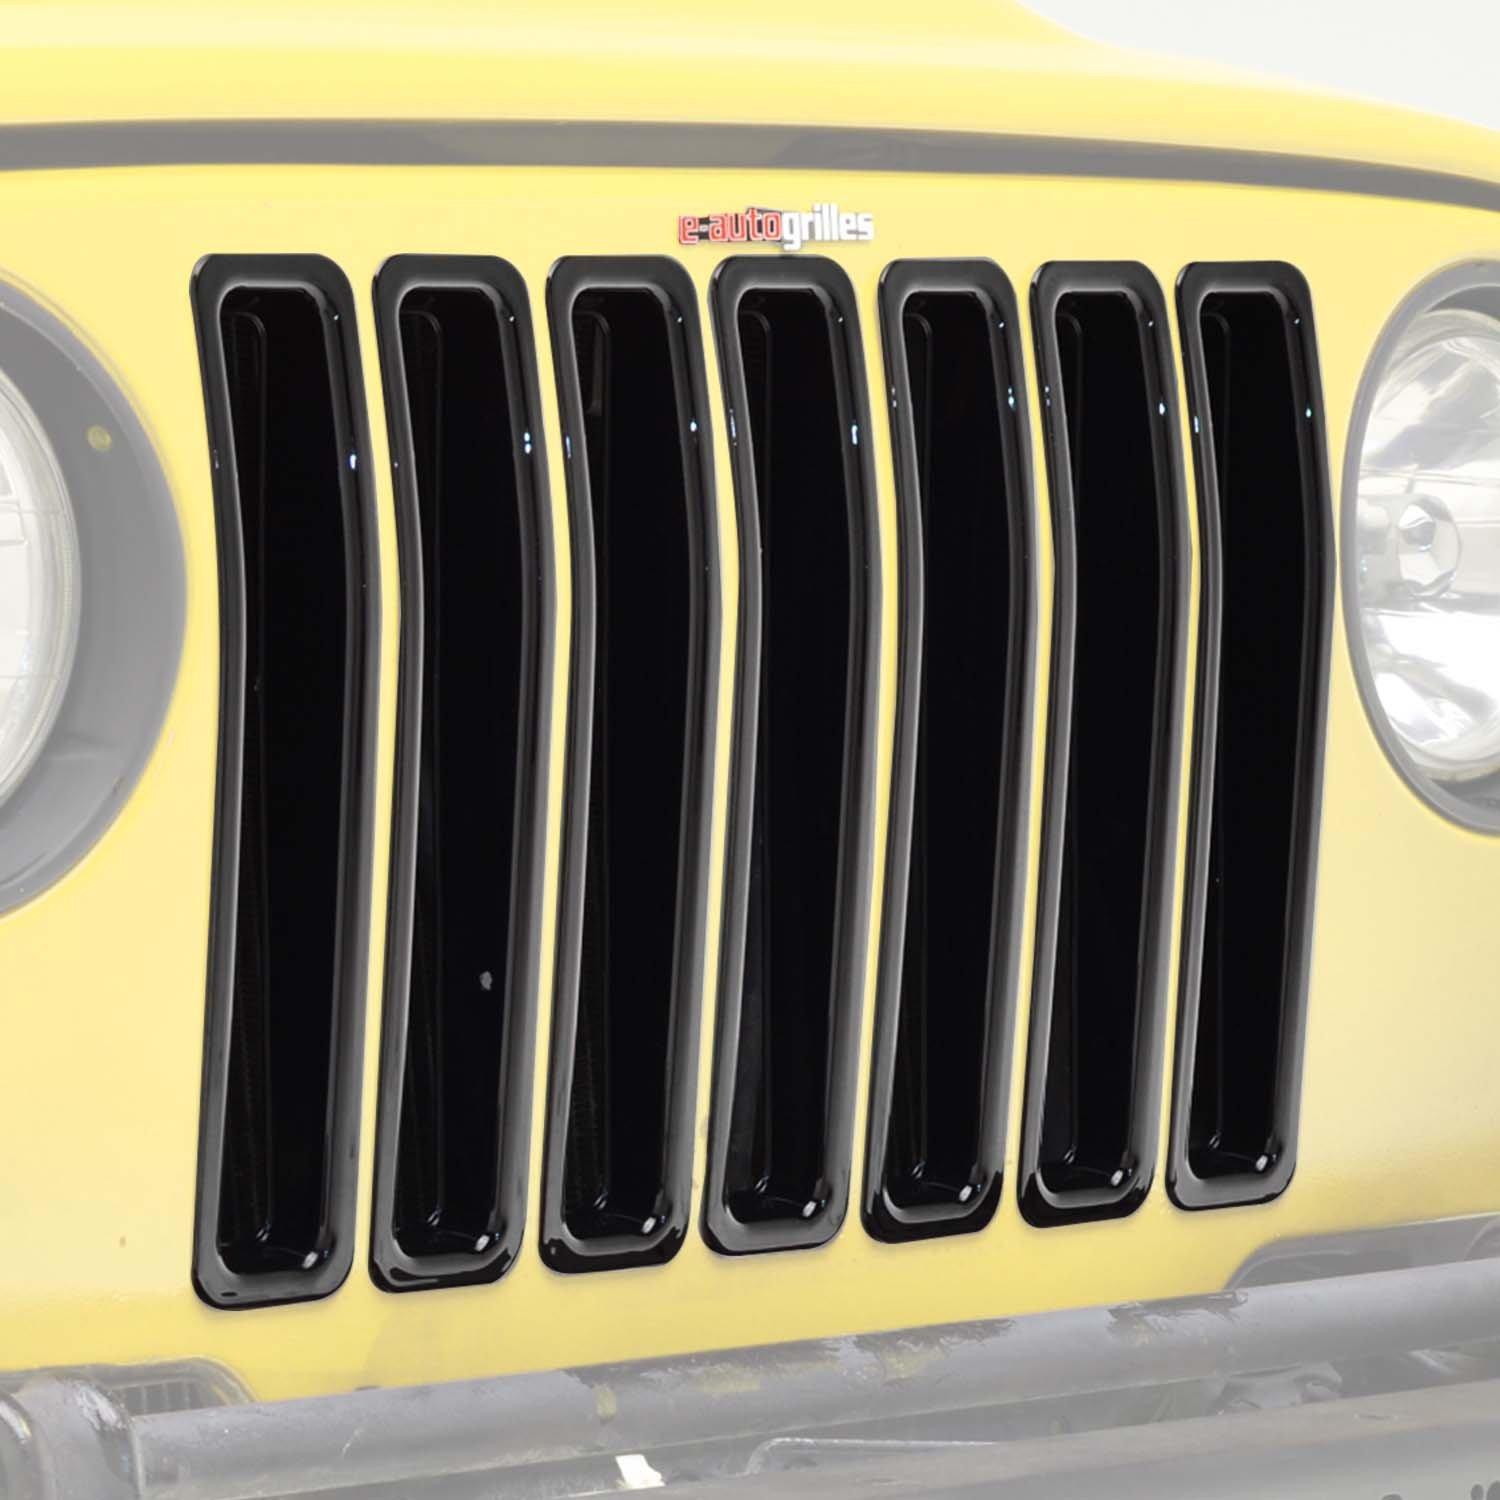 EAG 97-06 Jeep Wranngler TJ Grille Insert Black ABS Trim Front Grill Open 7PCS (41-0139)